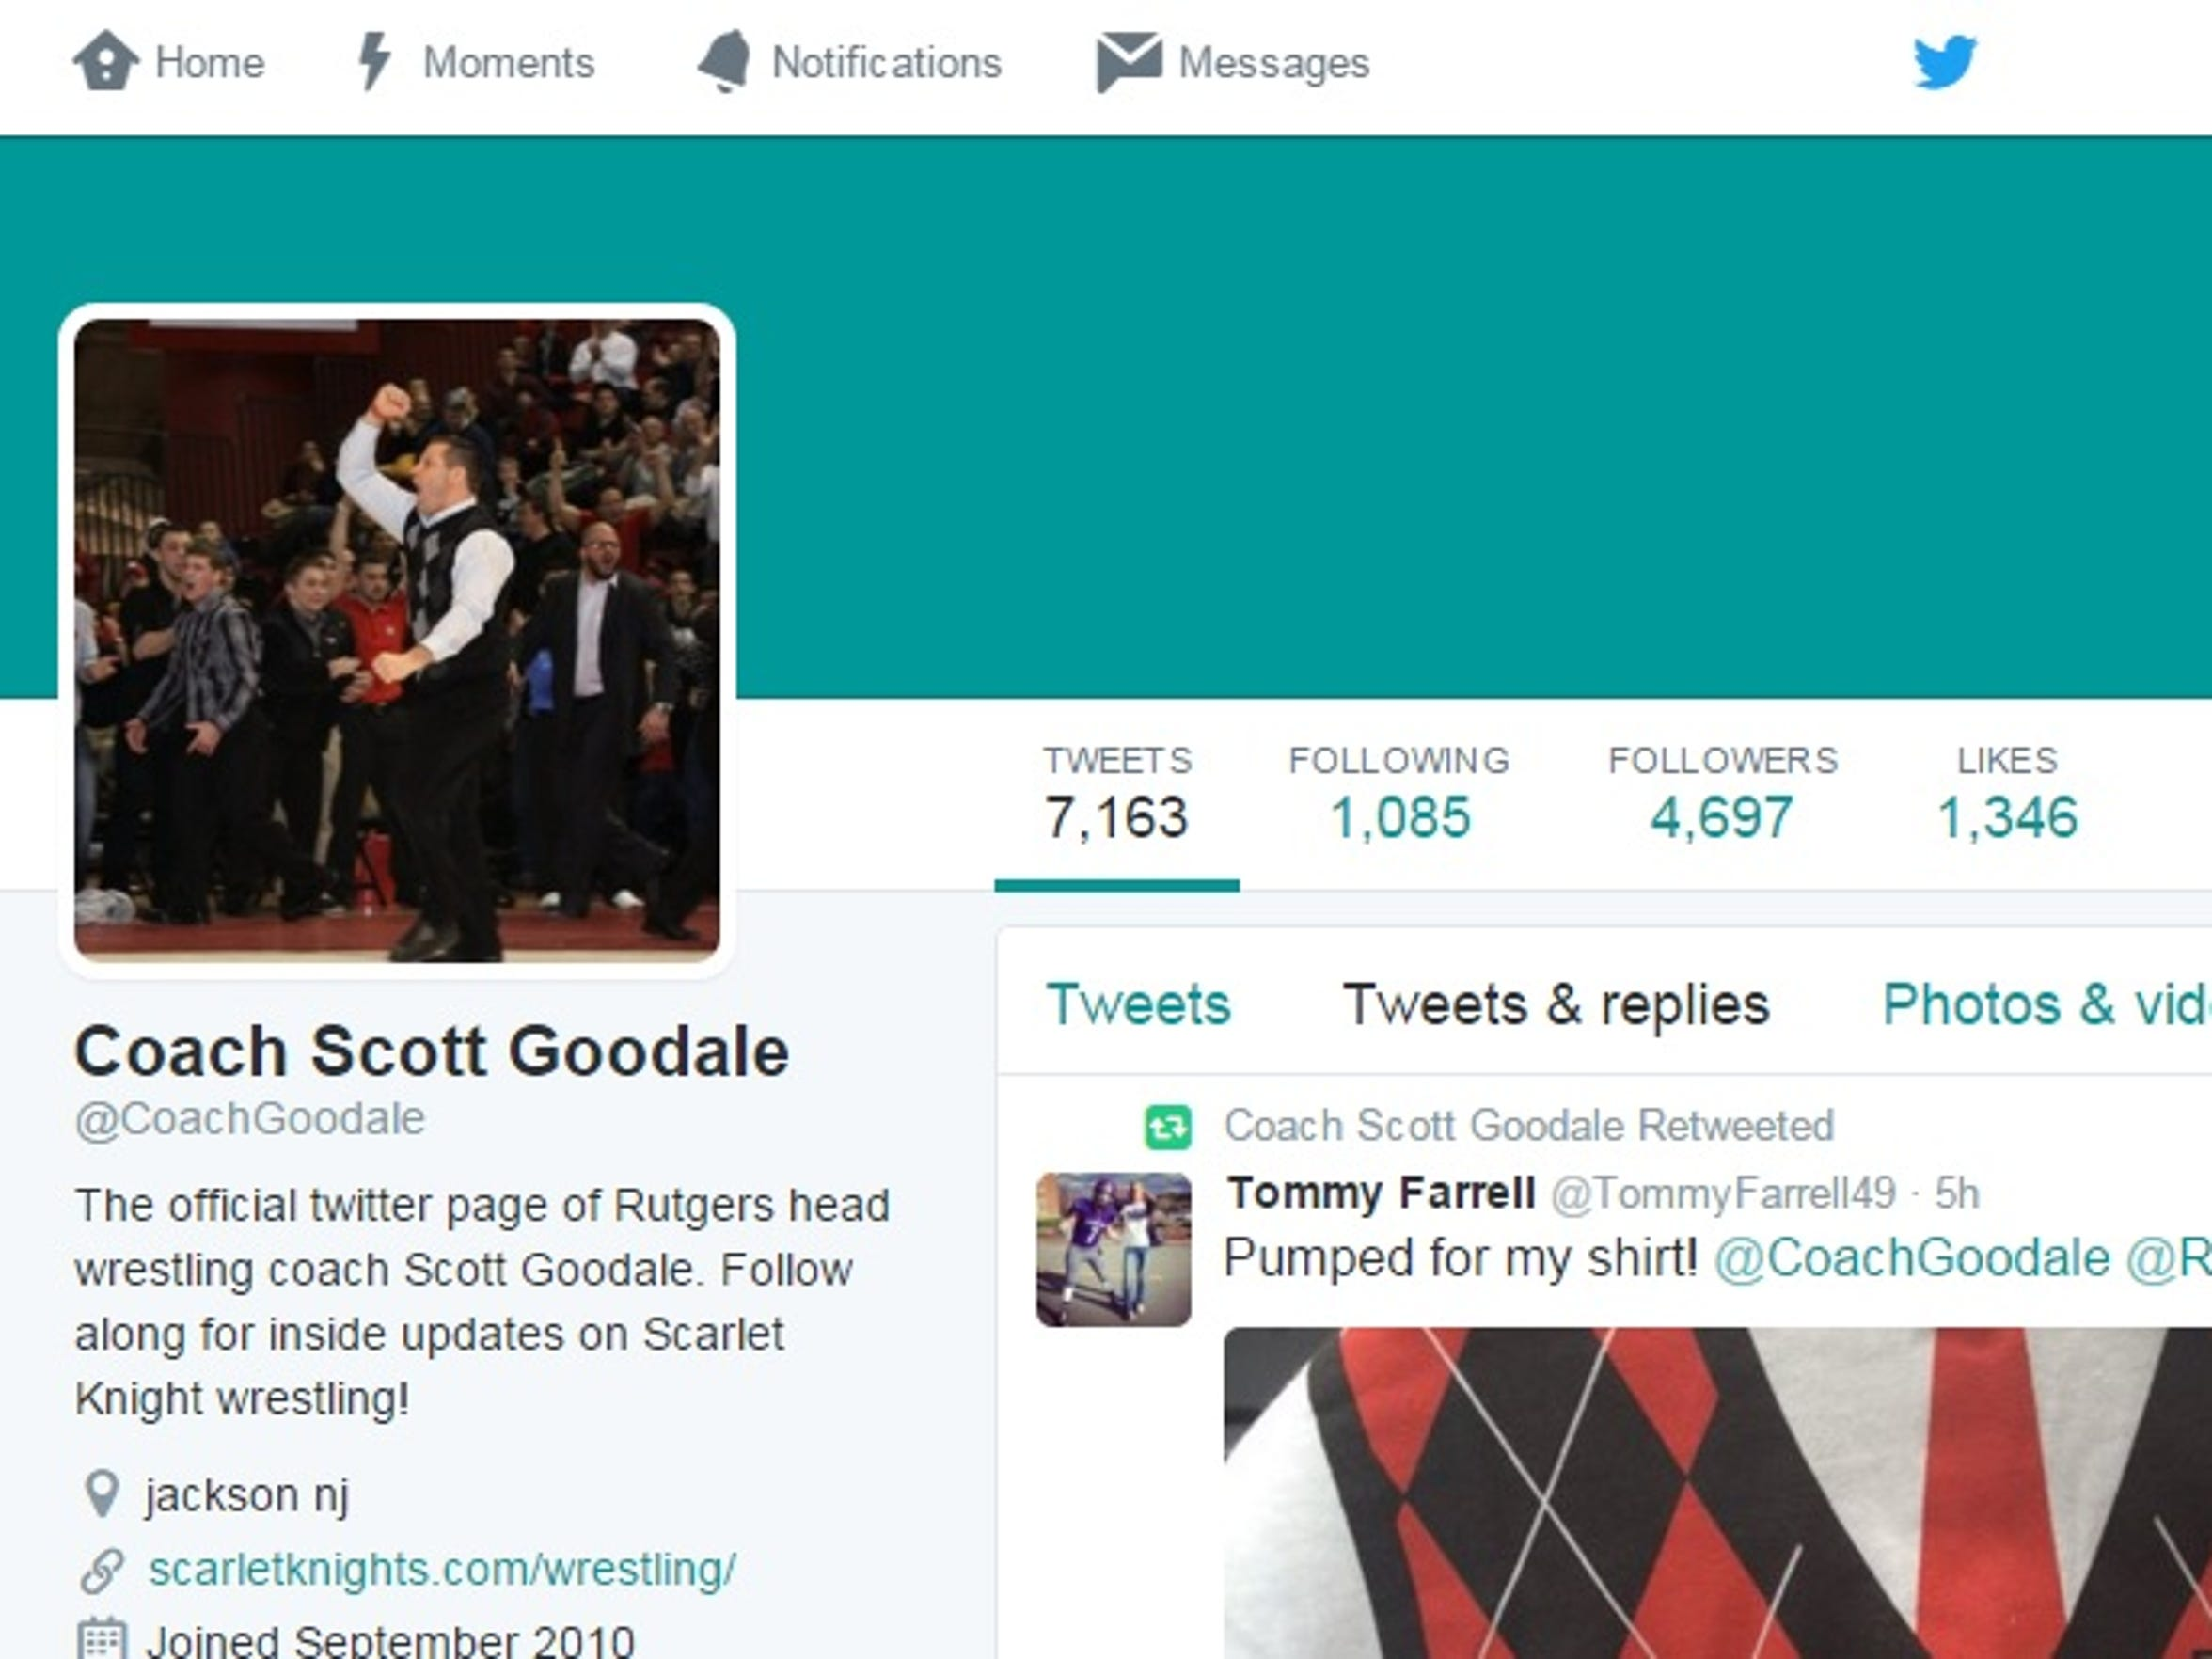 Rutgers coach Scott Goodale's profile photo on Twitter depicts a special memory.